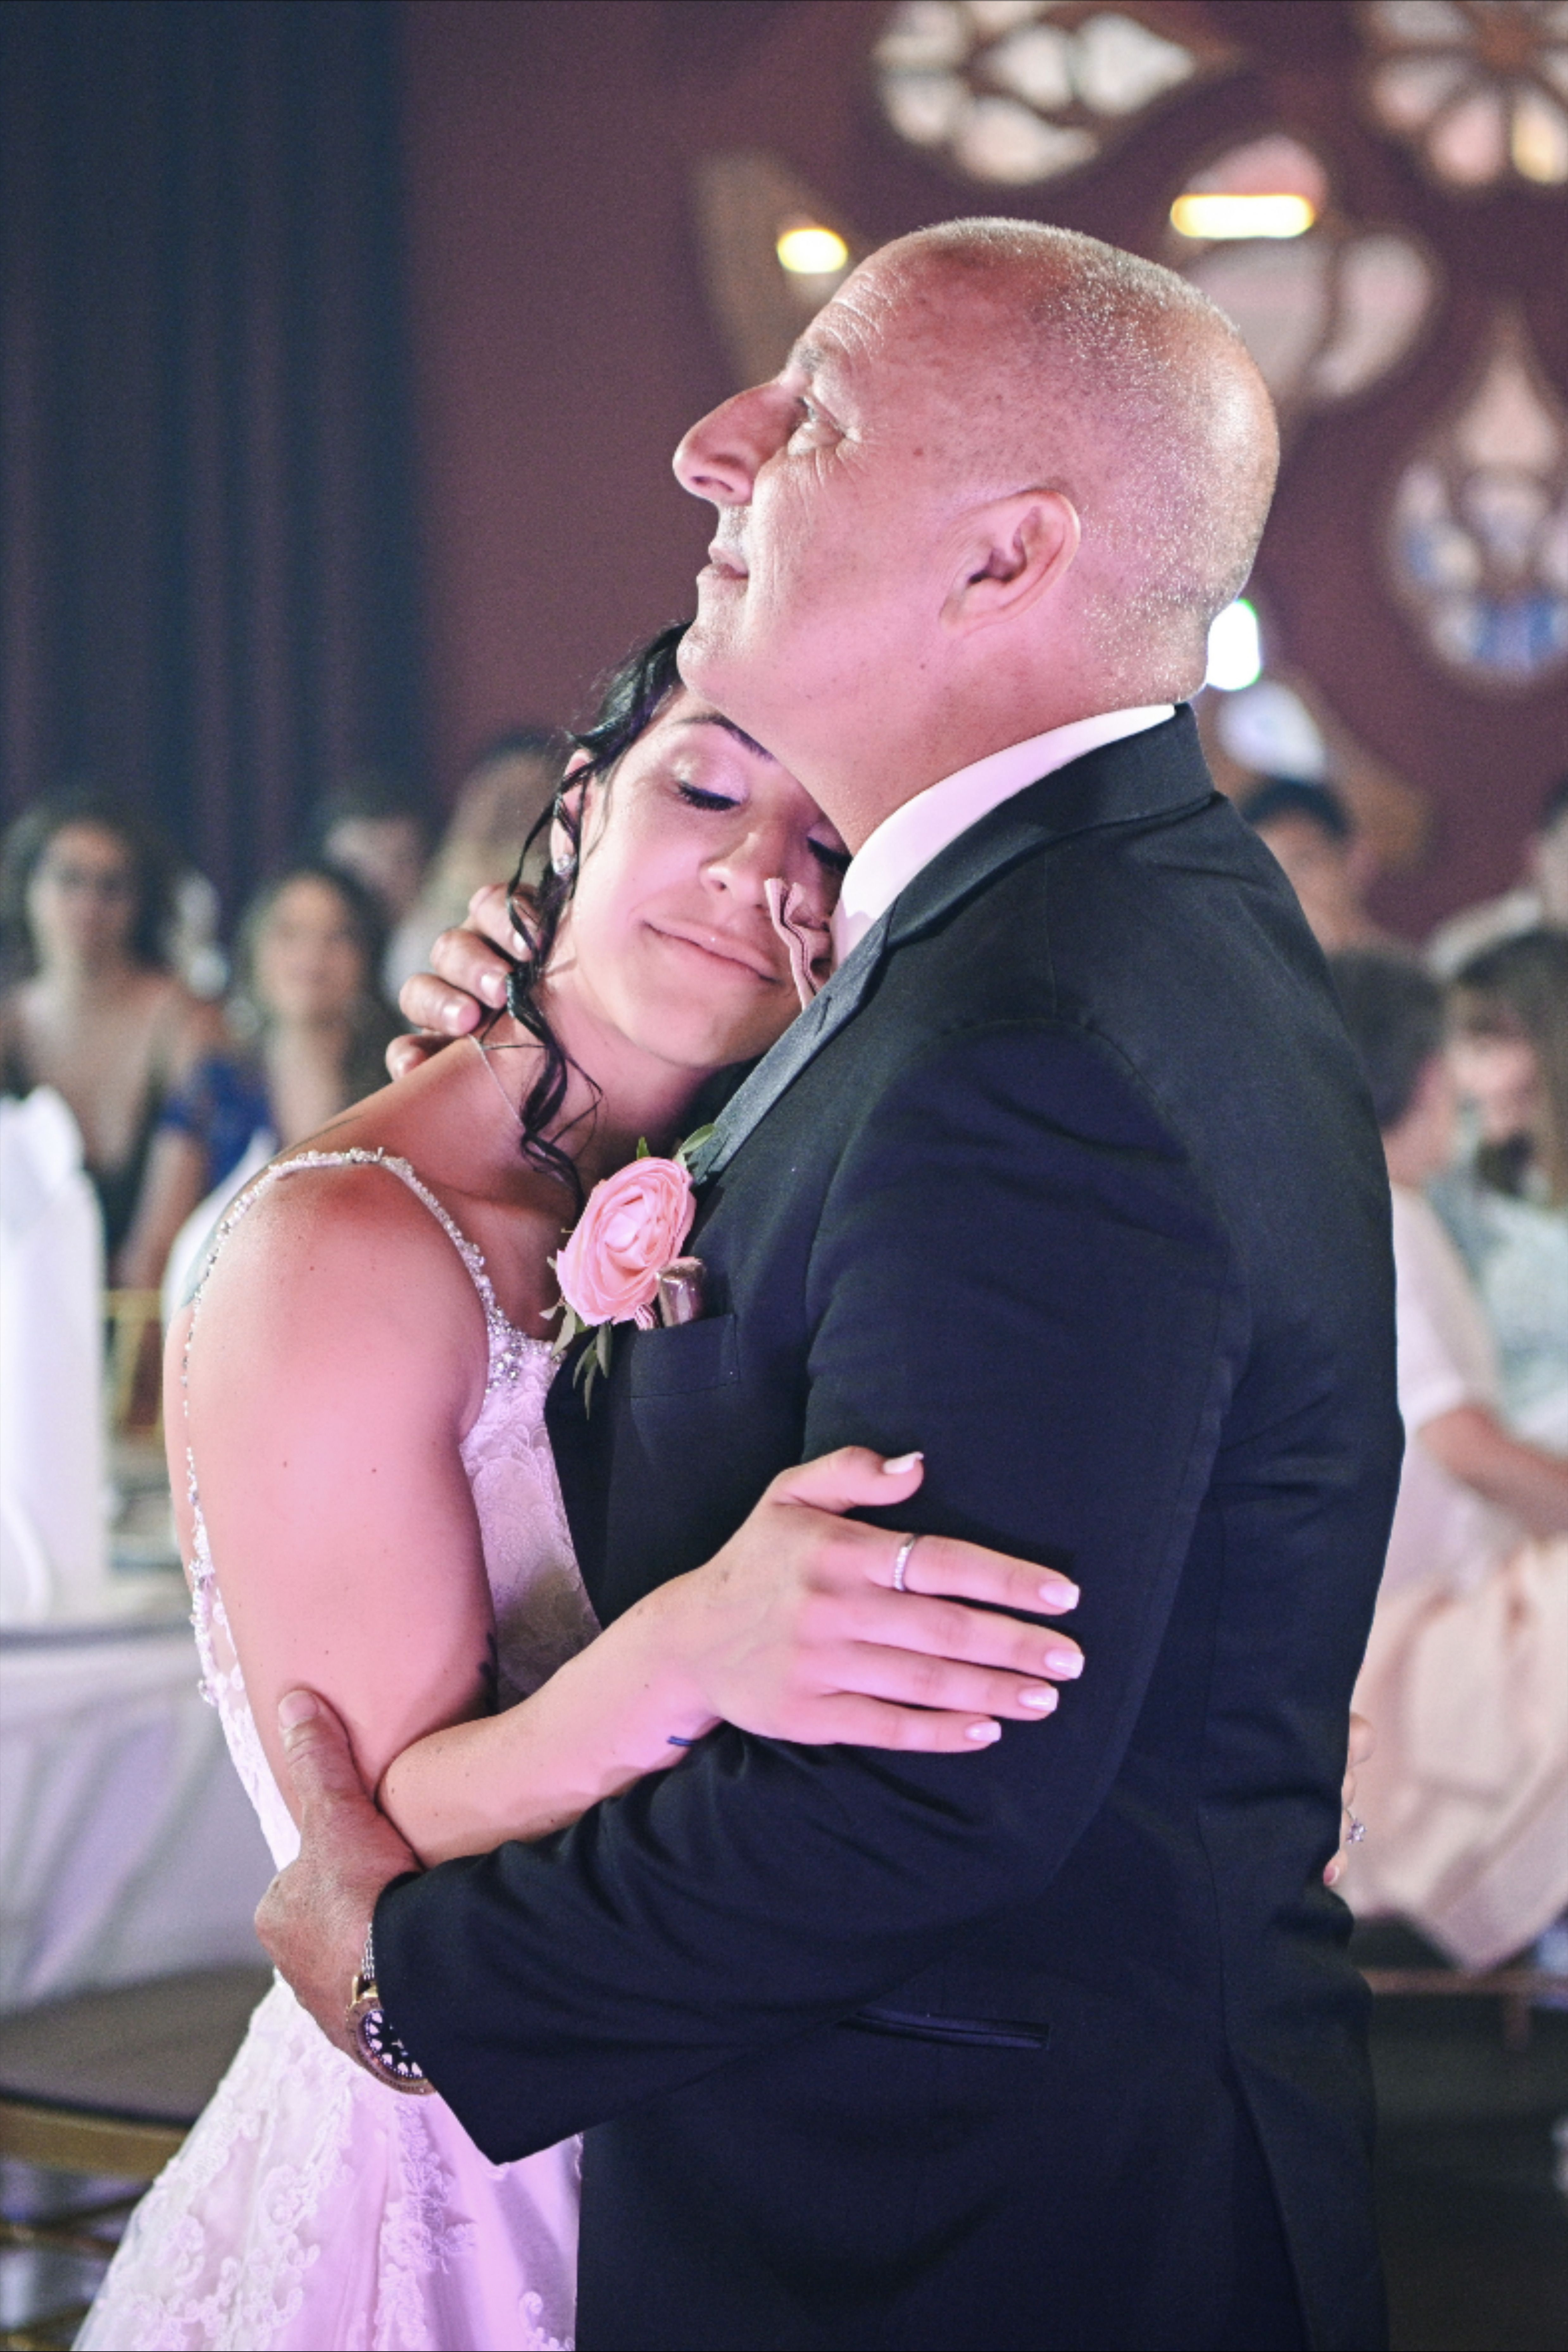 Father Daughter Wedding Dance In 2020 Father Daughter Wedding Dance Father Daughter Wedding Wedding Dance